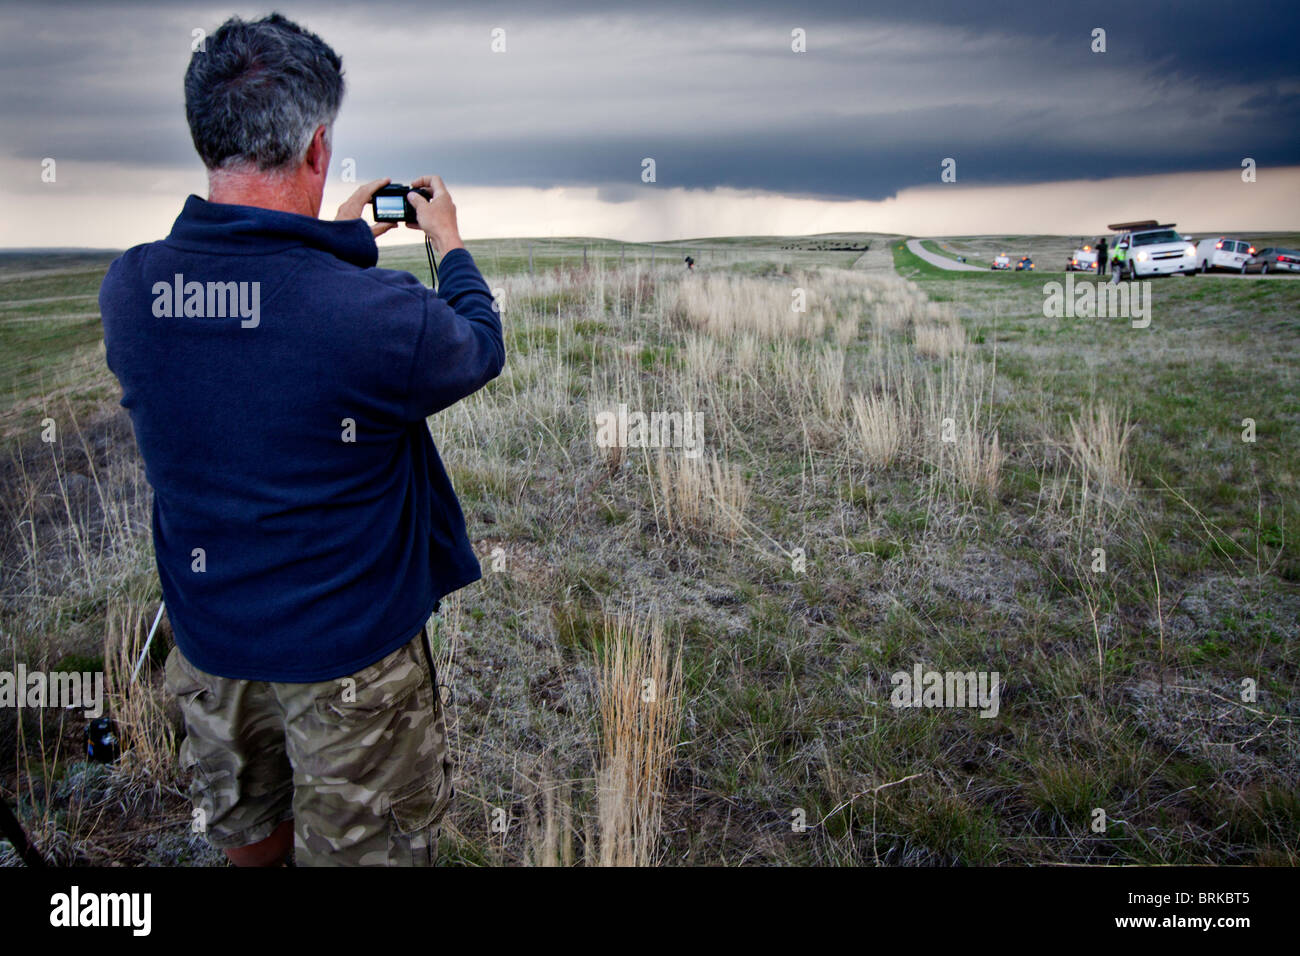 Project Vortex 2 member Herb Stein takes a photograph of a distant wall cloud in rural Wyoming, May 21, 2010. - Stock Image